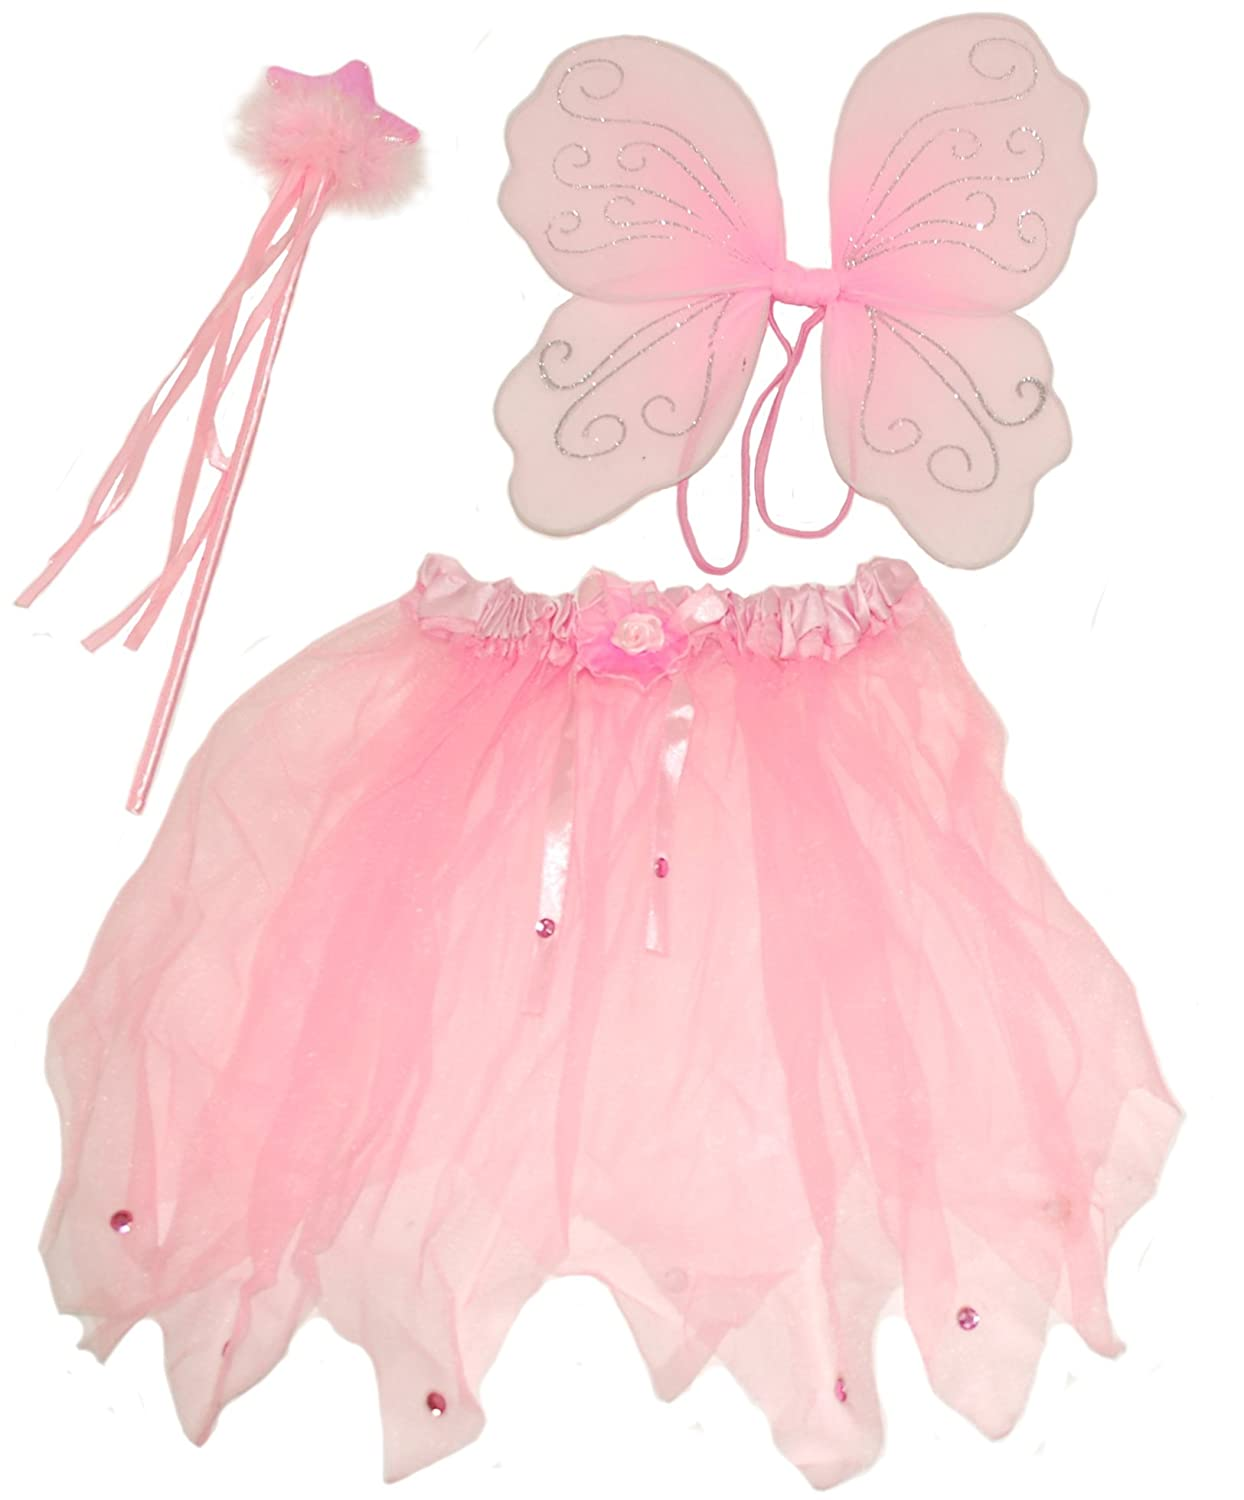 1a6d3c6a6 Cute Pink Fairy set , Comprising Wings, Wand and Tutu, Ideal Dressing up ,  Fancy Dress. Fairy costume.: Amazon.co.uk: Toys & Games